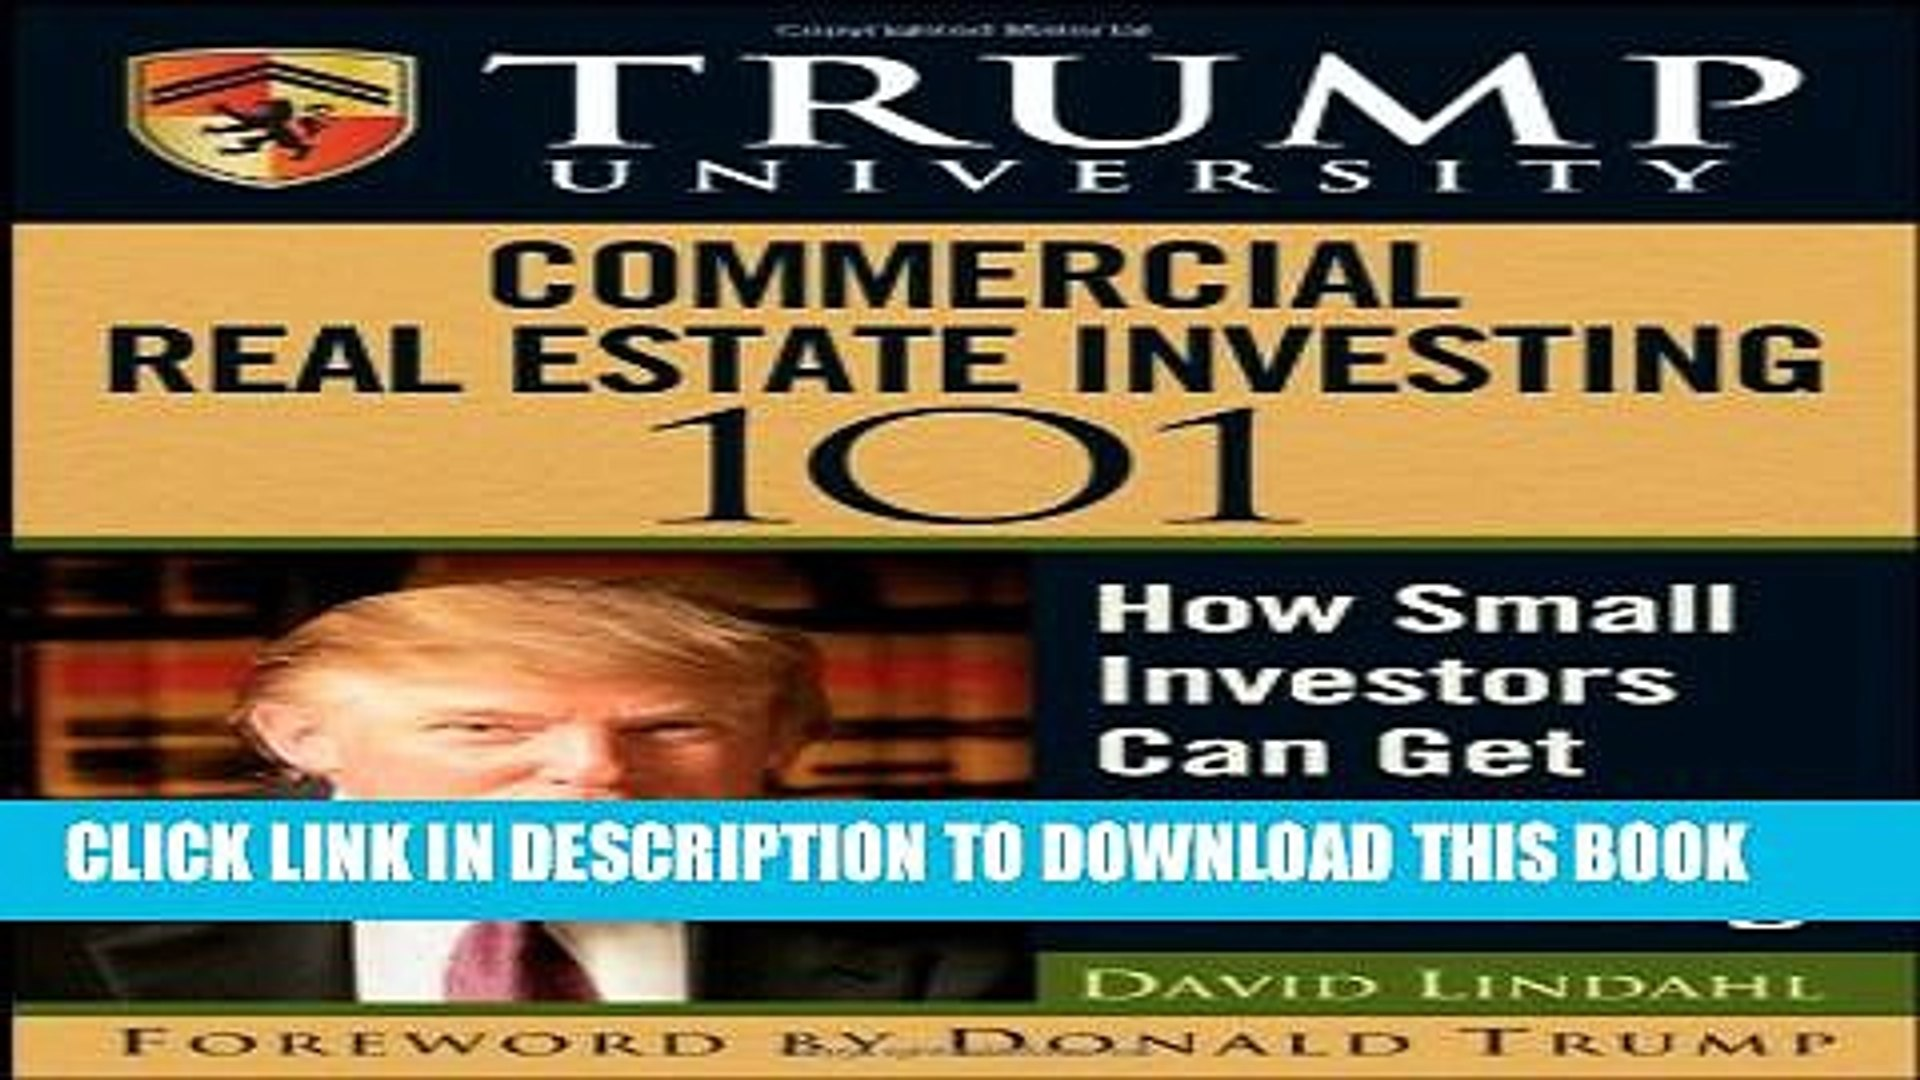 New Book Trump University Commercial Real Estate 101: How Small Investors Can Get Started and Make